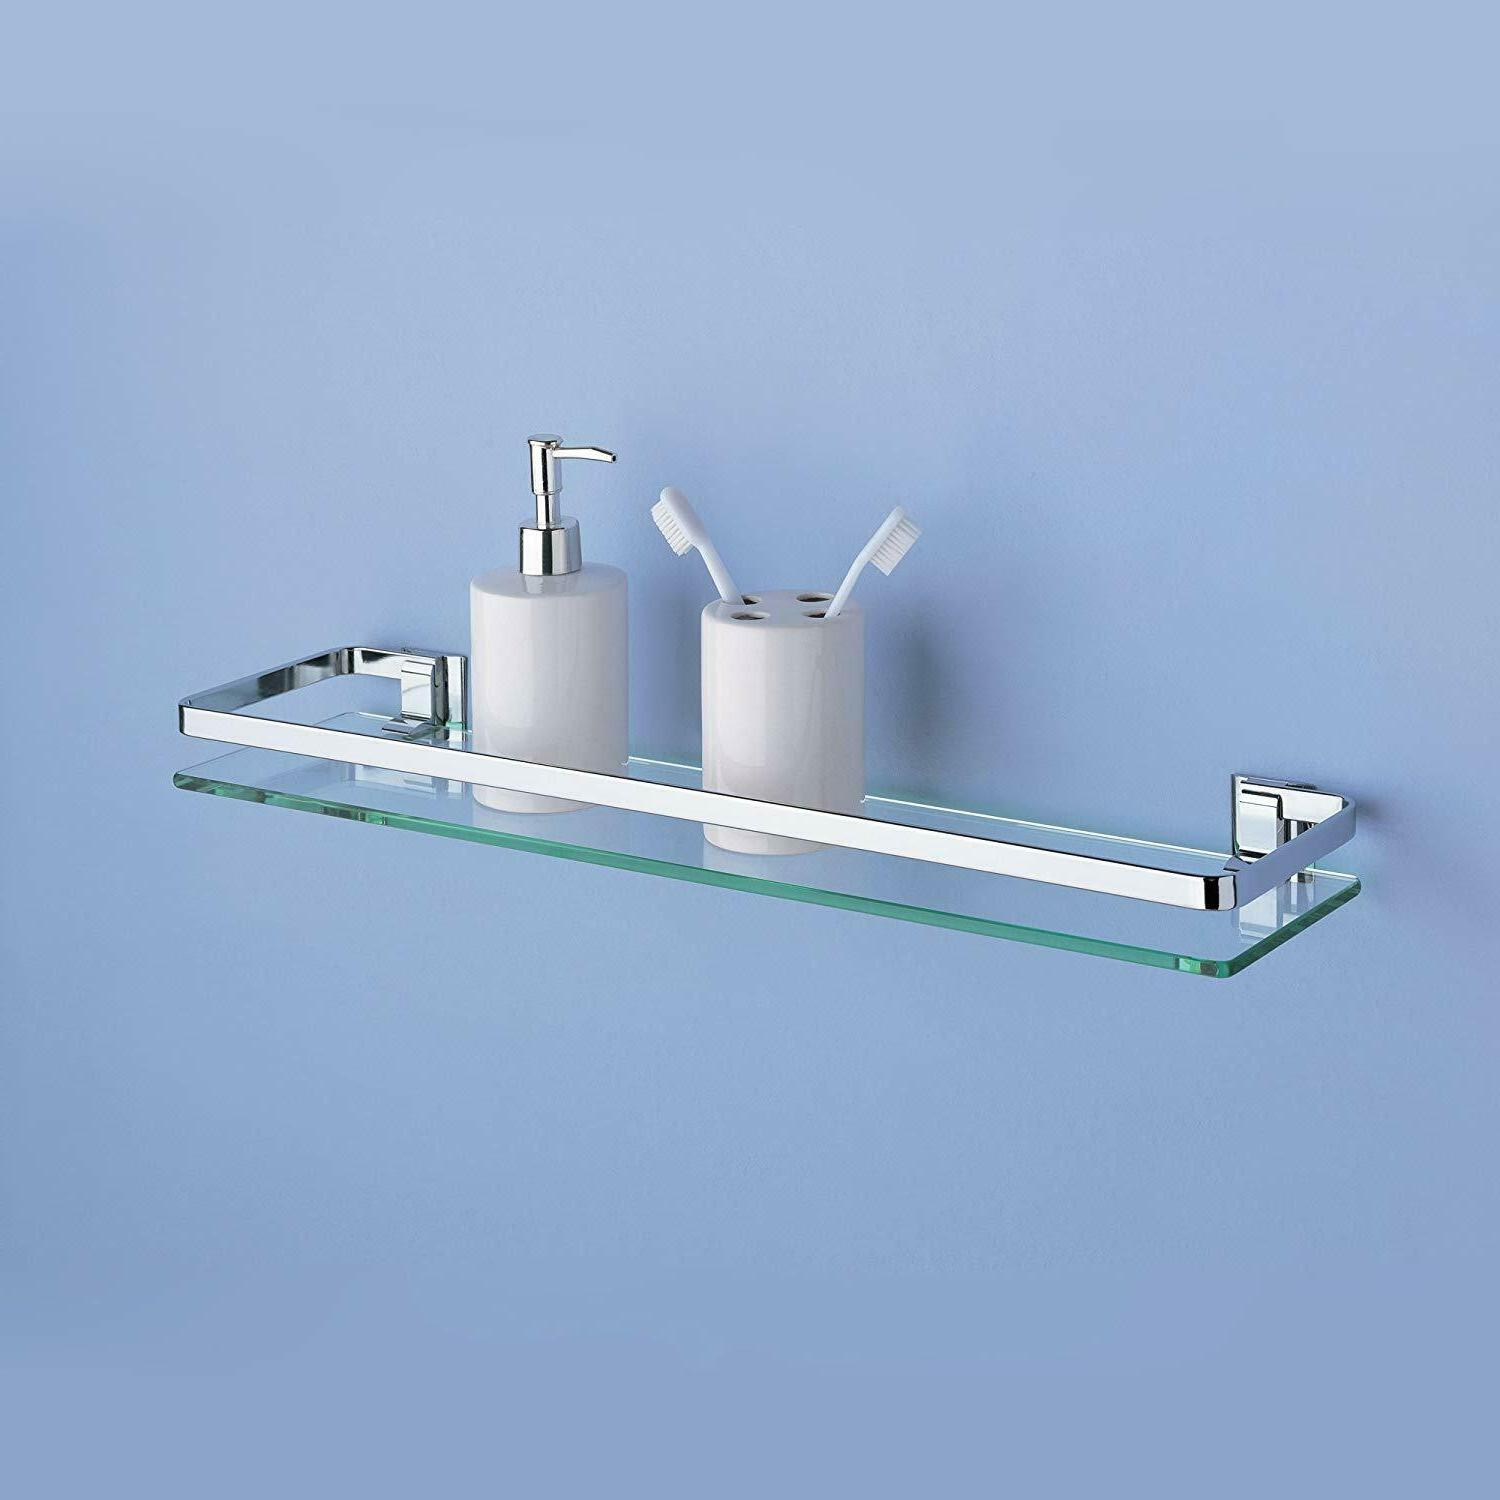 Glass Shelves Bathroom Wall Tempered Drywall